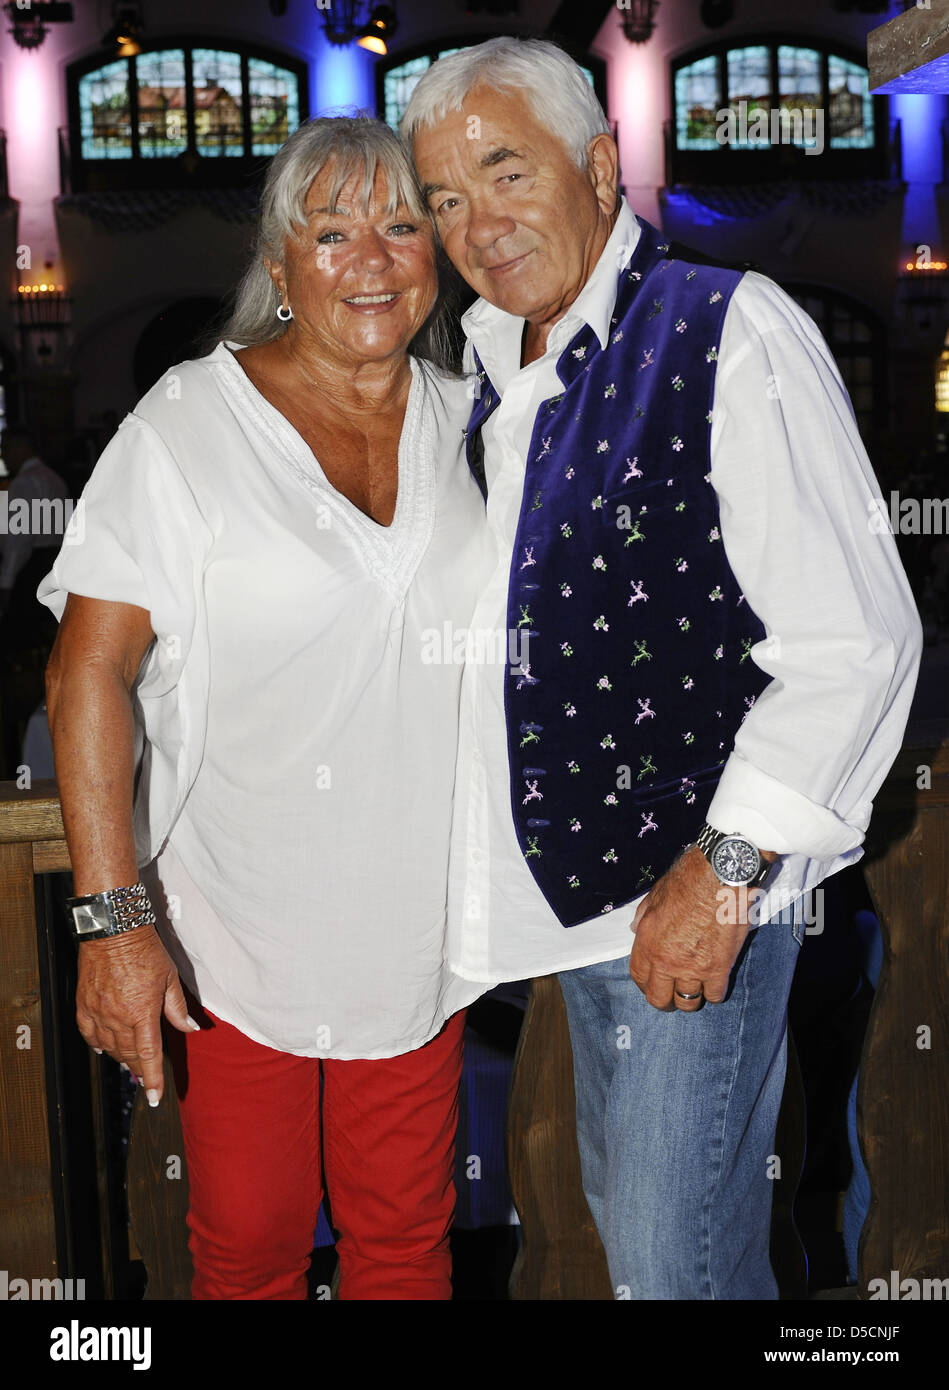 Gus Backus and his wife Heidelore at the Angermaier fashion event at Loewenbraeukeller. Munich, Germany - 01.09.2011 Stock Photo